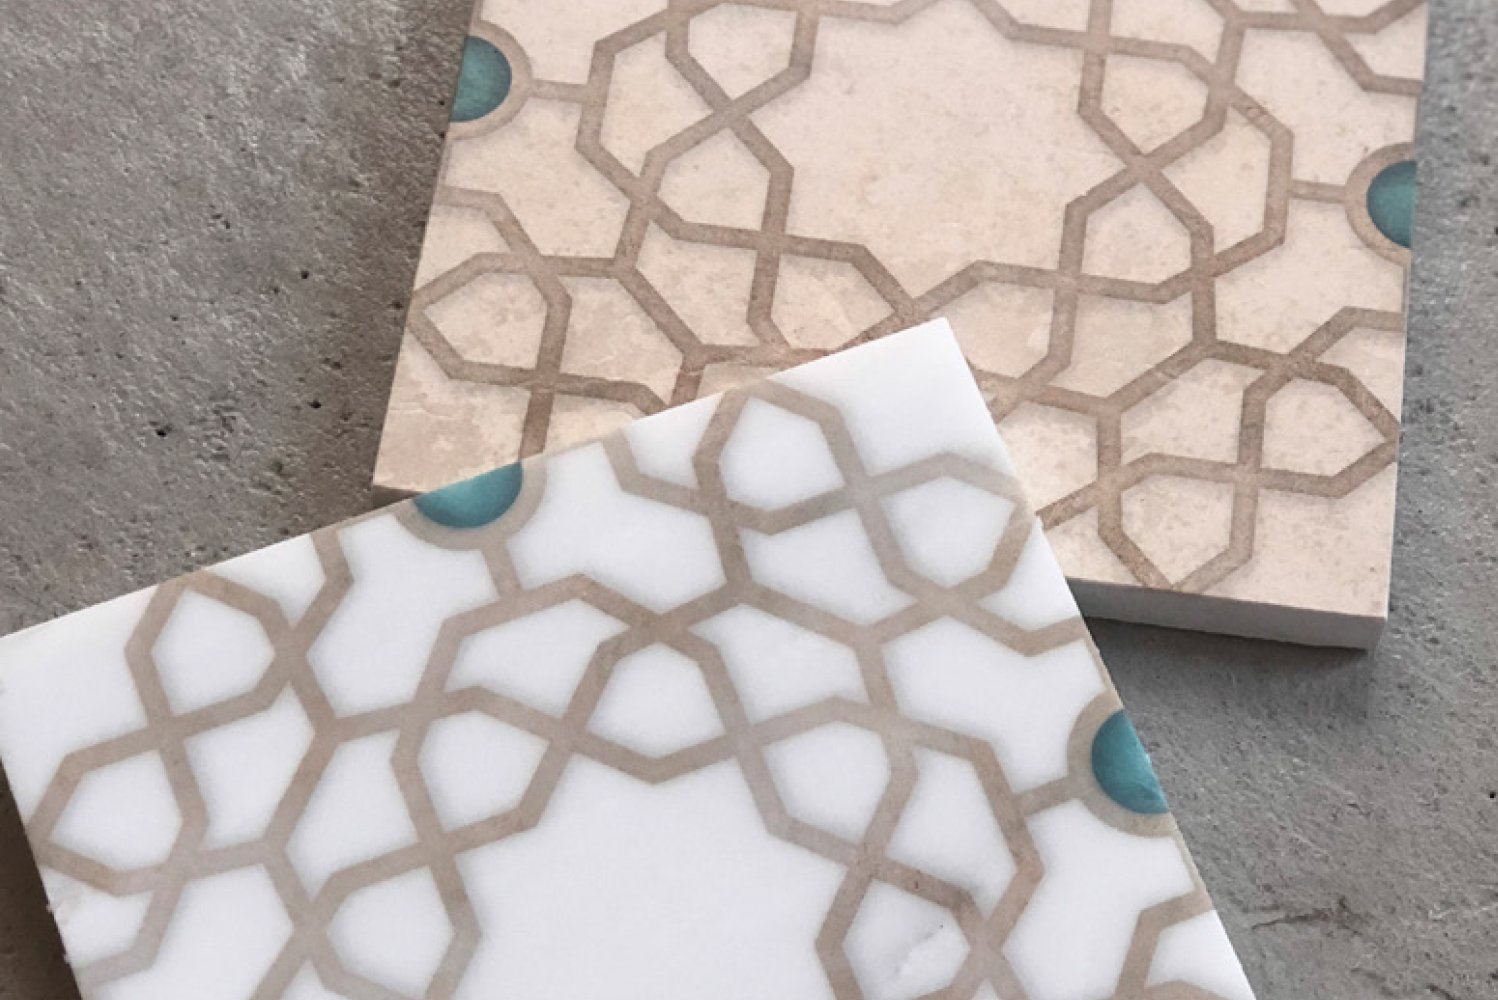 Celebrating the Mediterranean culture, the tiles are available in Carrara marble or limestone.